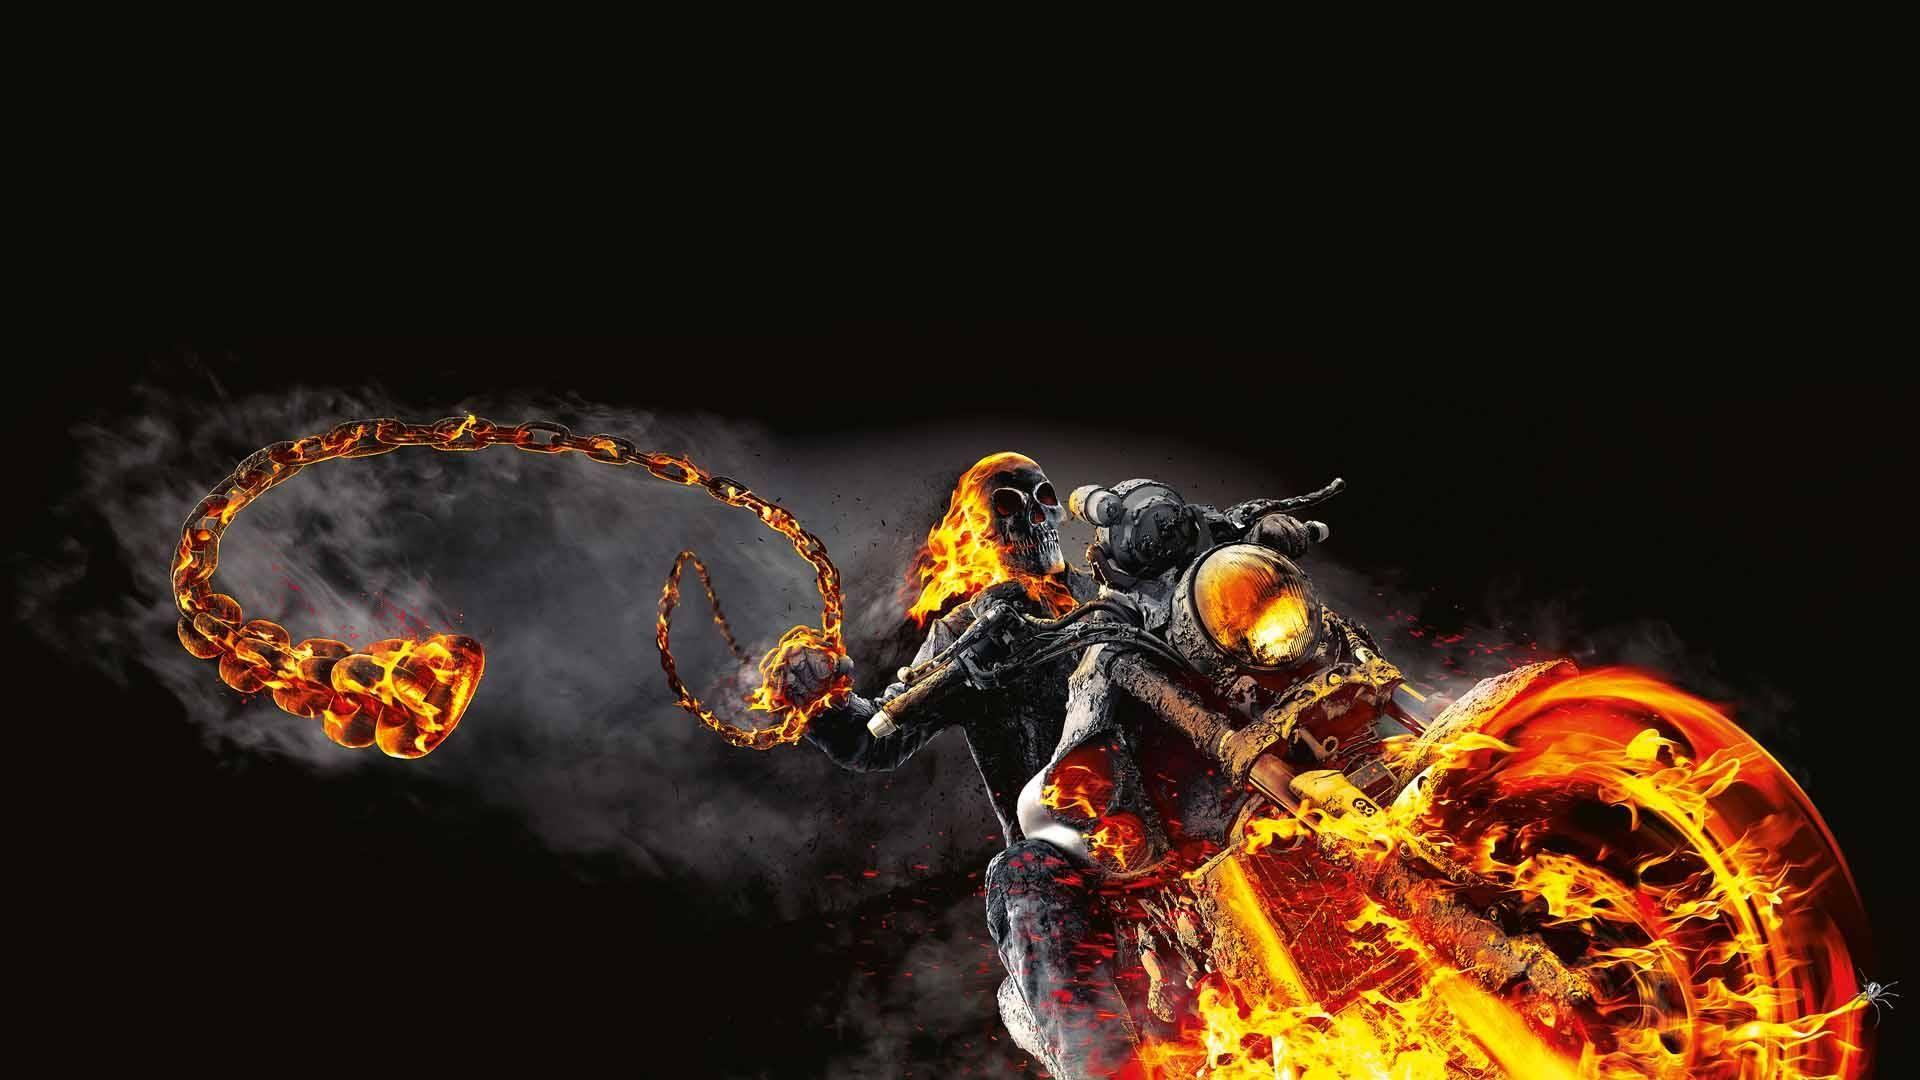 HD Ghost Rider 4K Image – free download